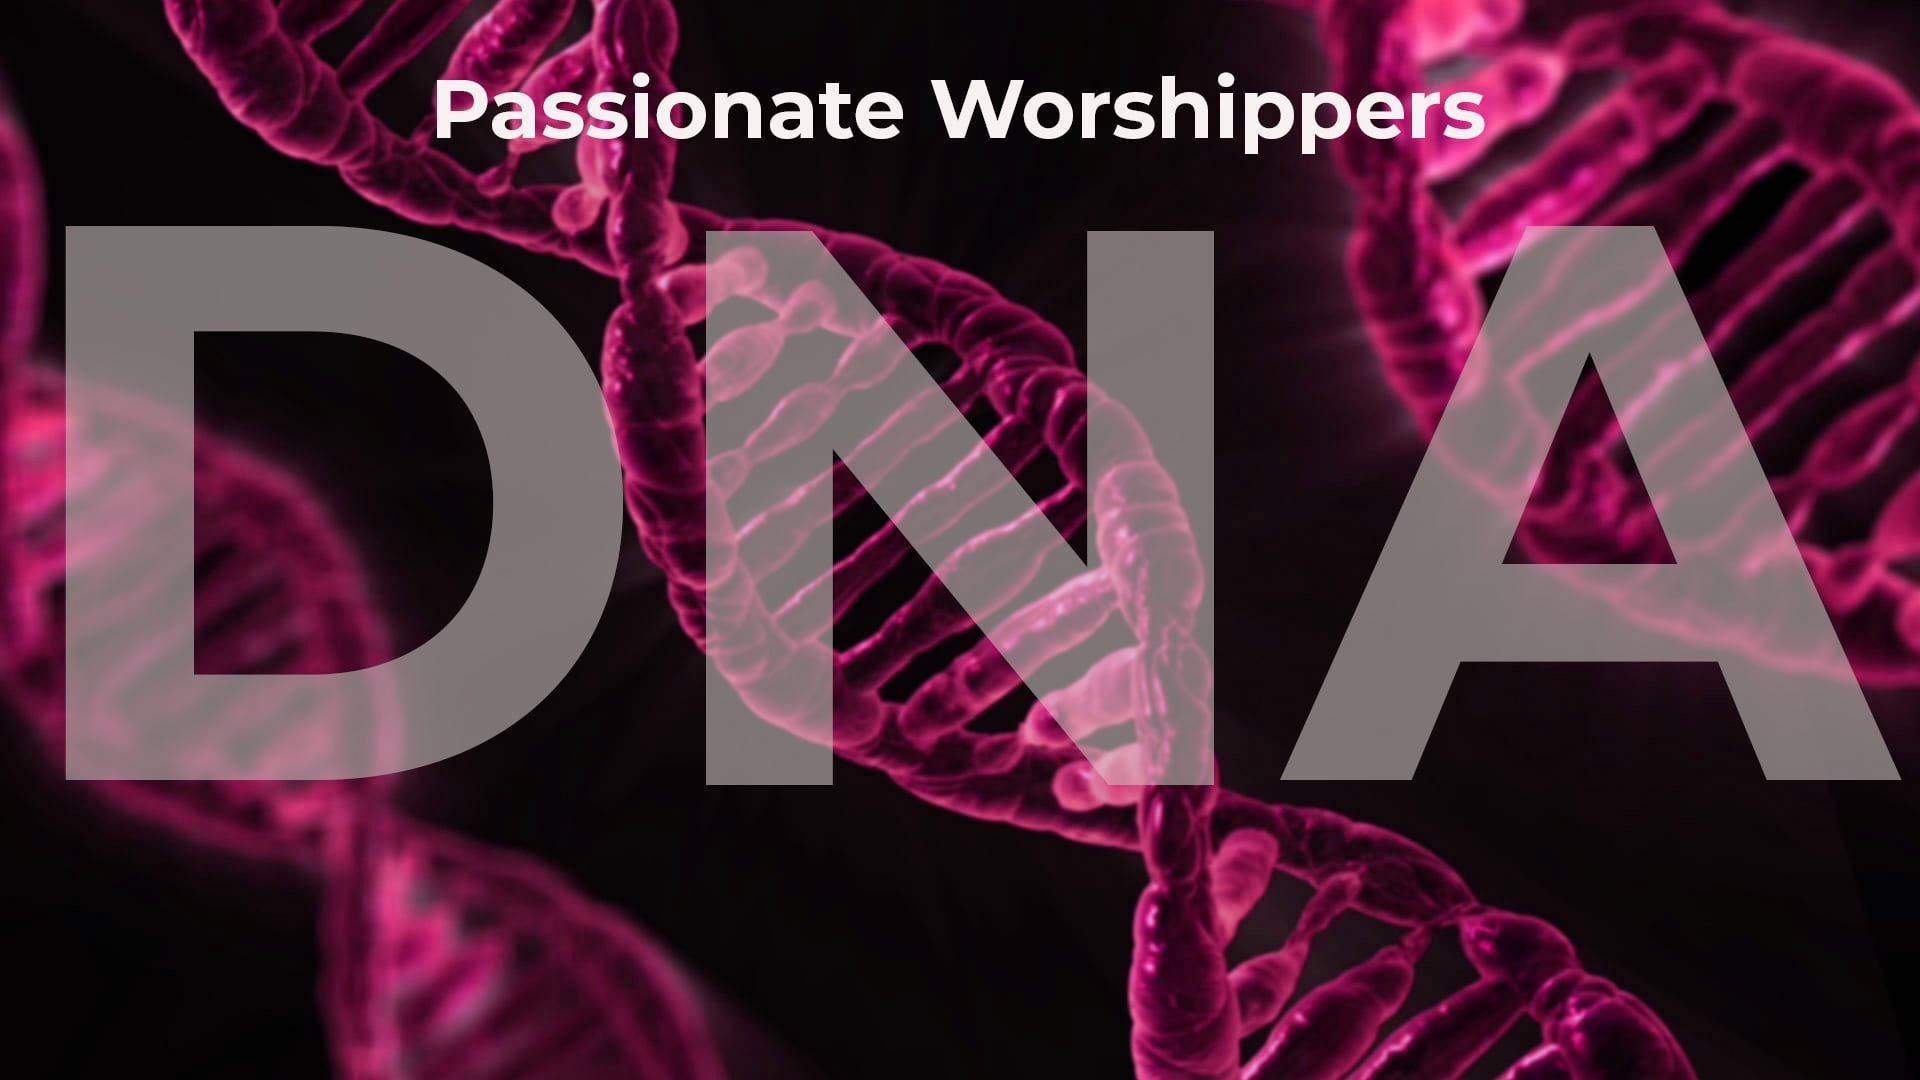 DNA - Passionate Worshippers